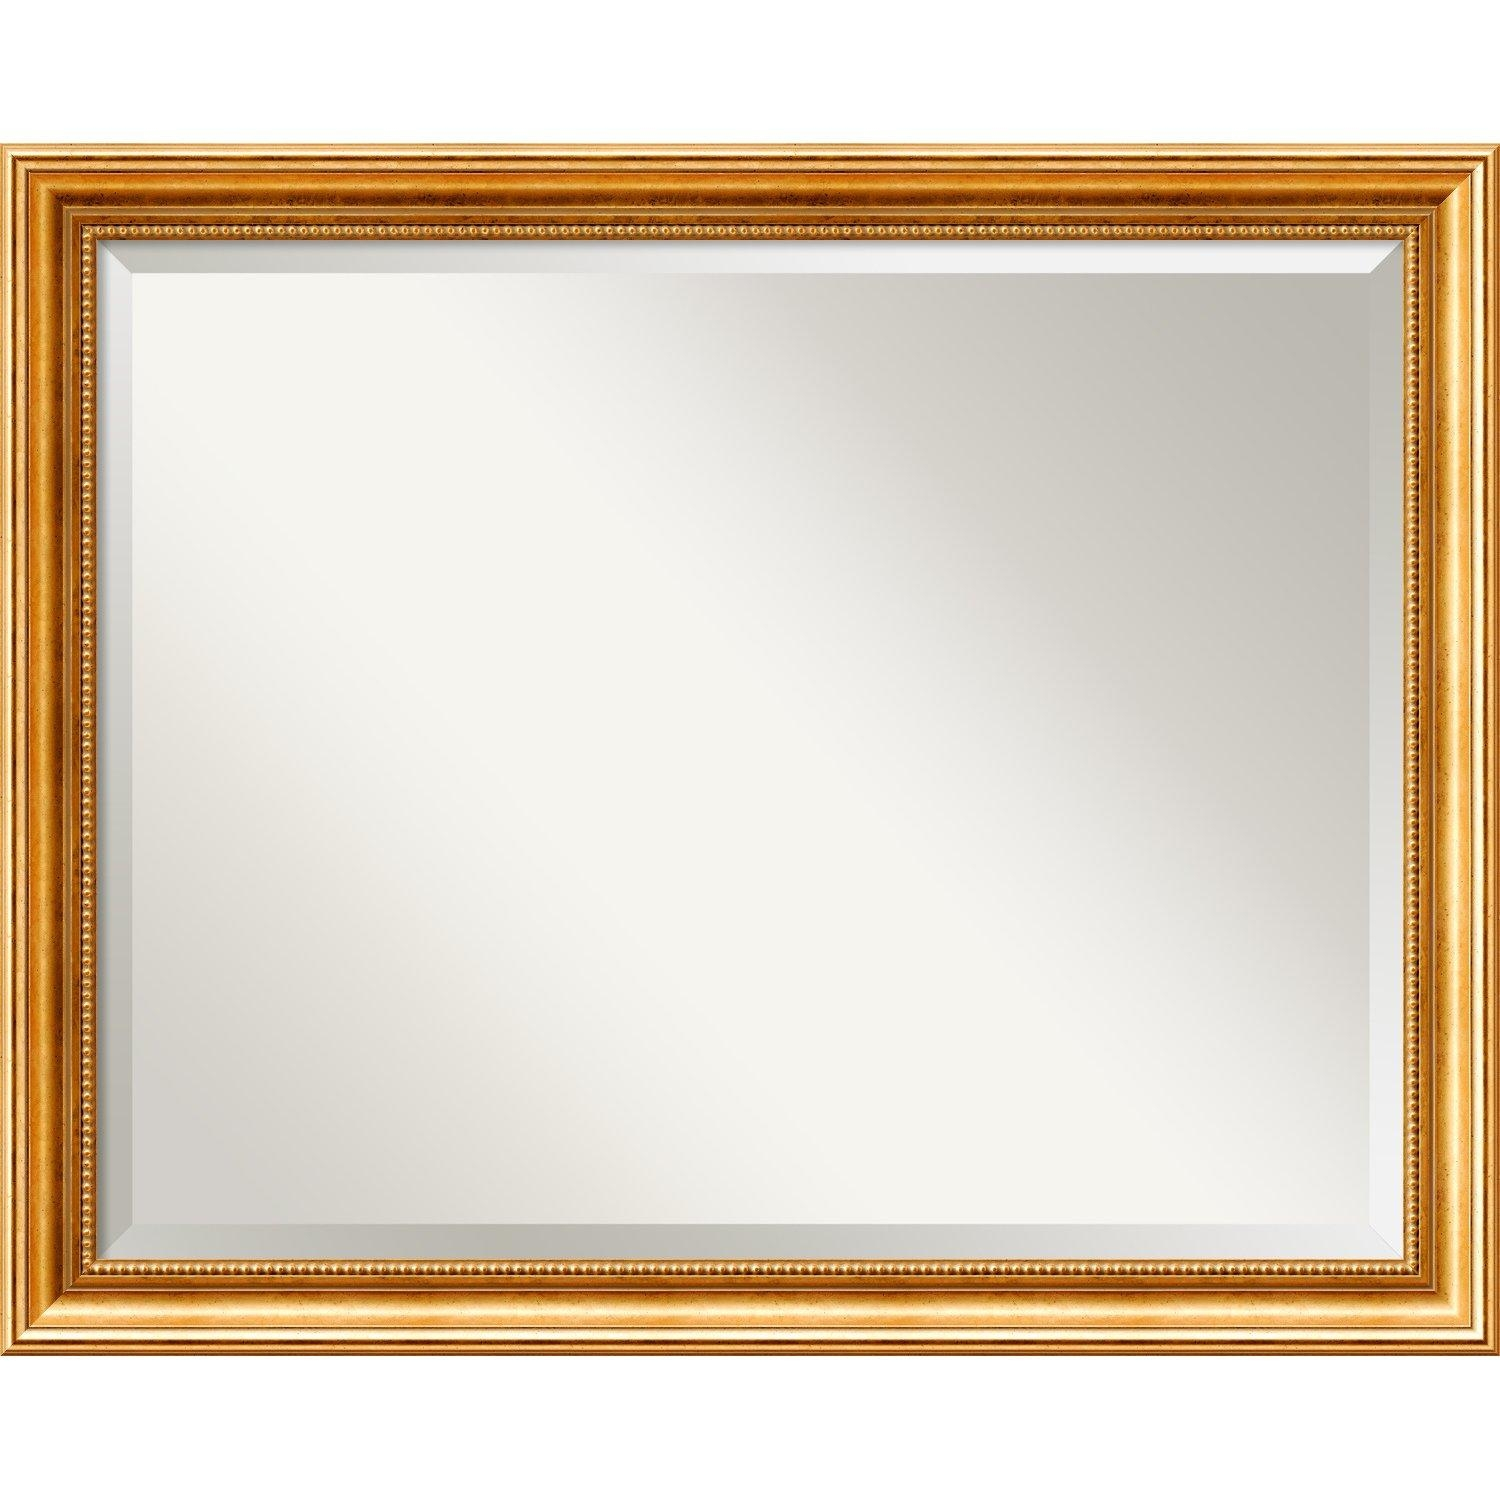 Astoria Grand Hendry Gold Wall Mirror & Reviews | Wayfair In Gold Wall Mirrors (Image 1 of 20)